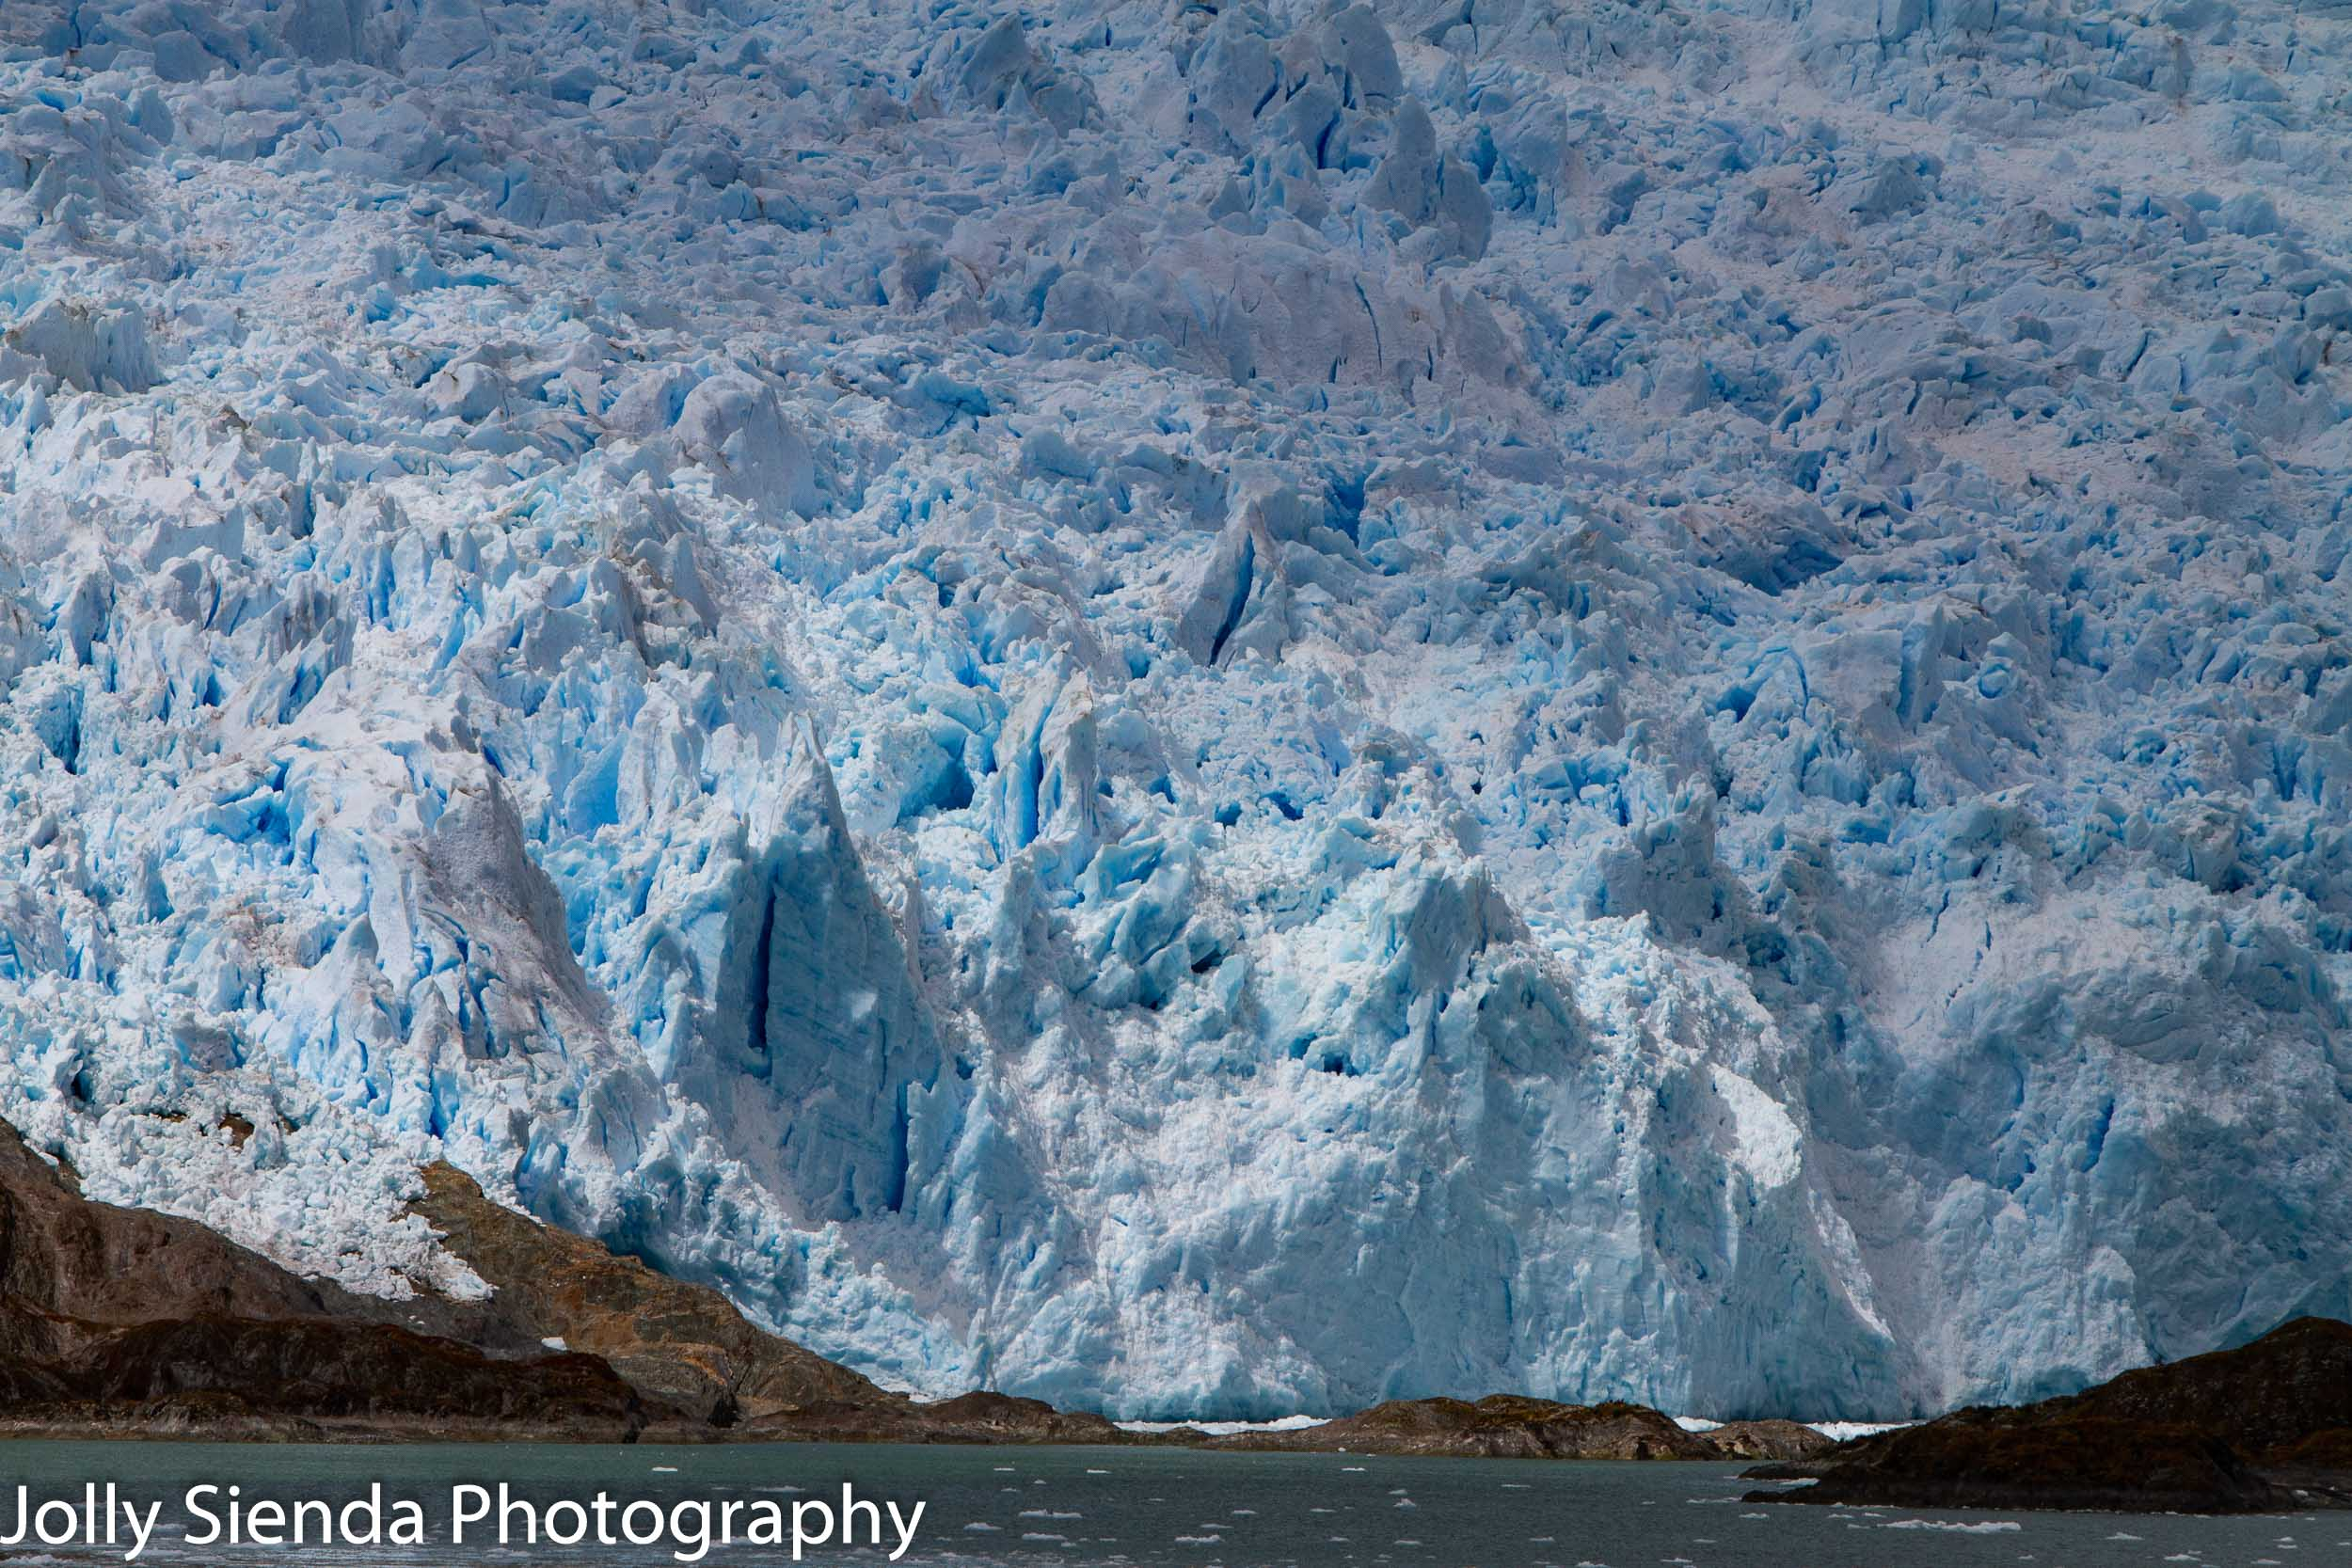 Glaciers at Glacier Alley, Chile